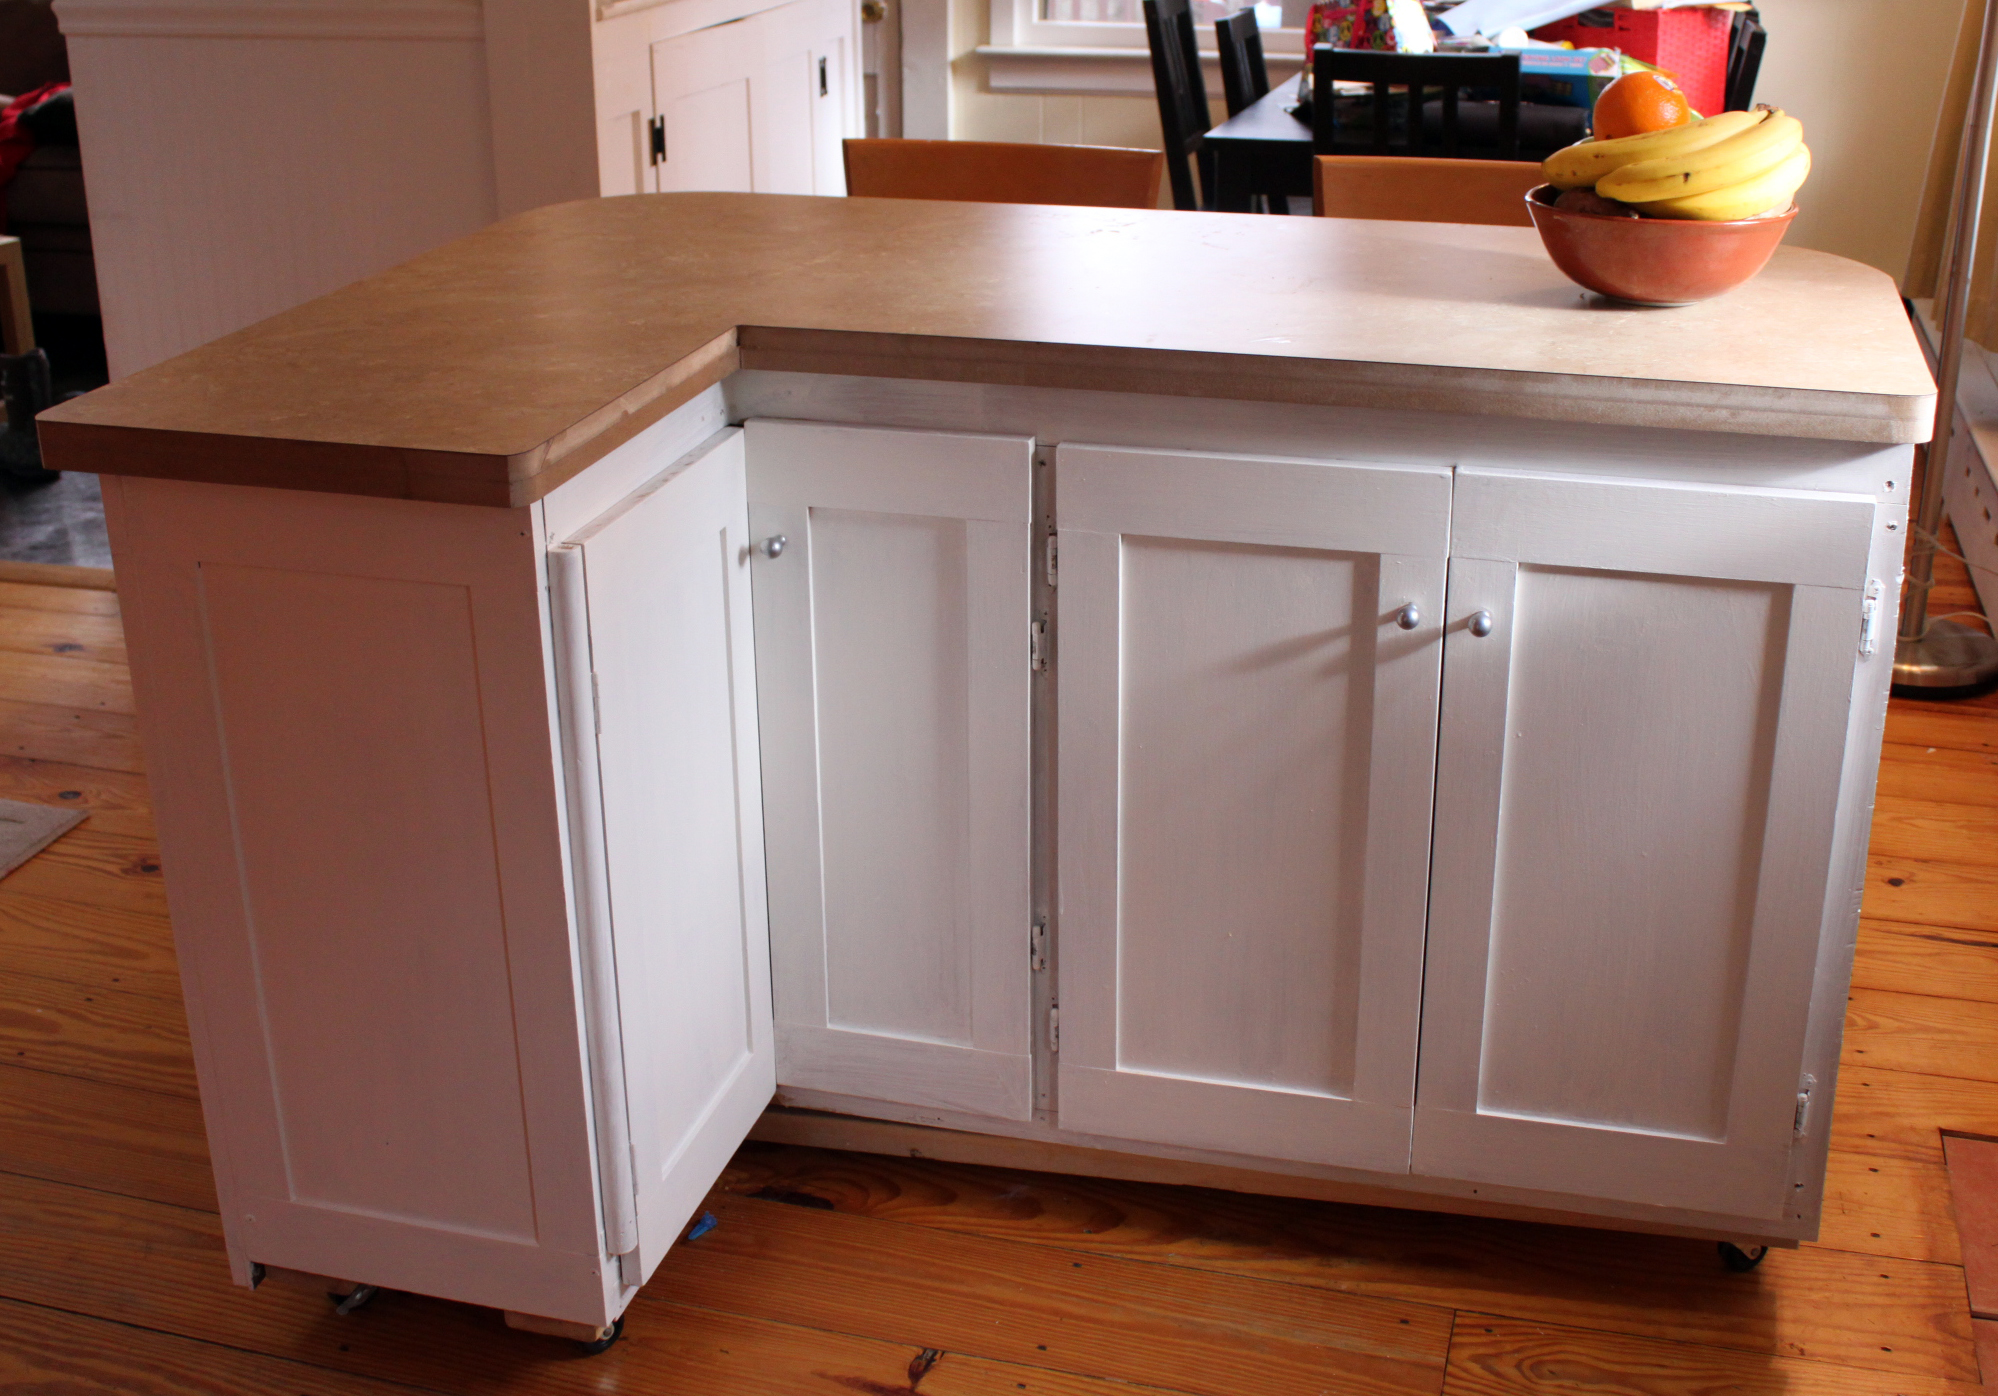 Weeknd project low budget kitchen renovation welcome to for Kitchen island cabinets